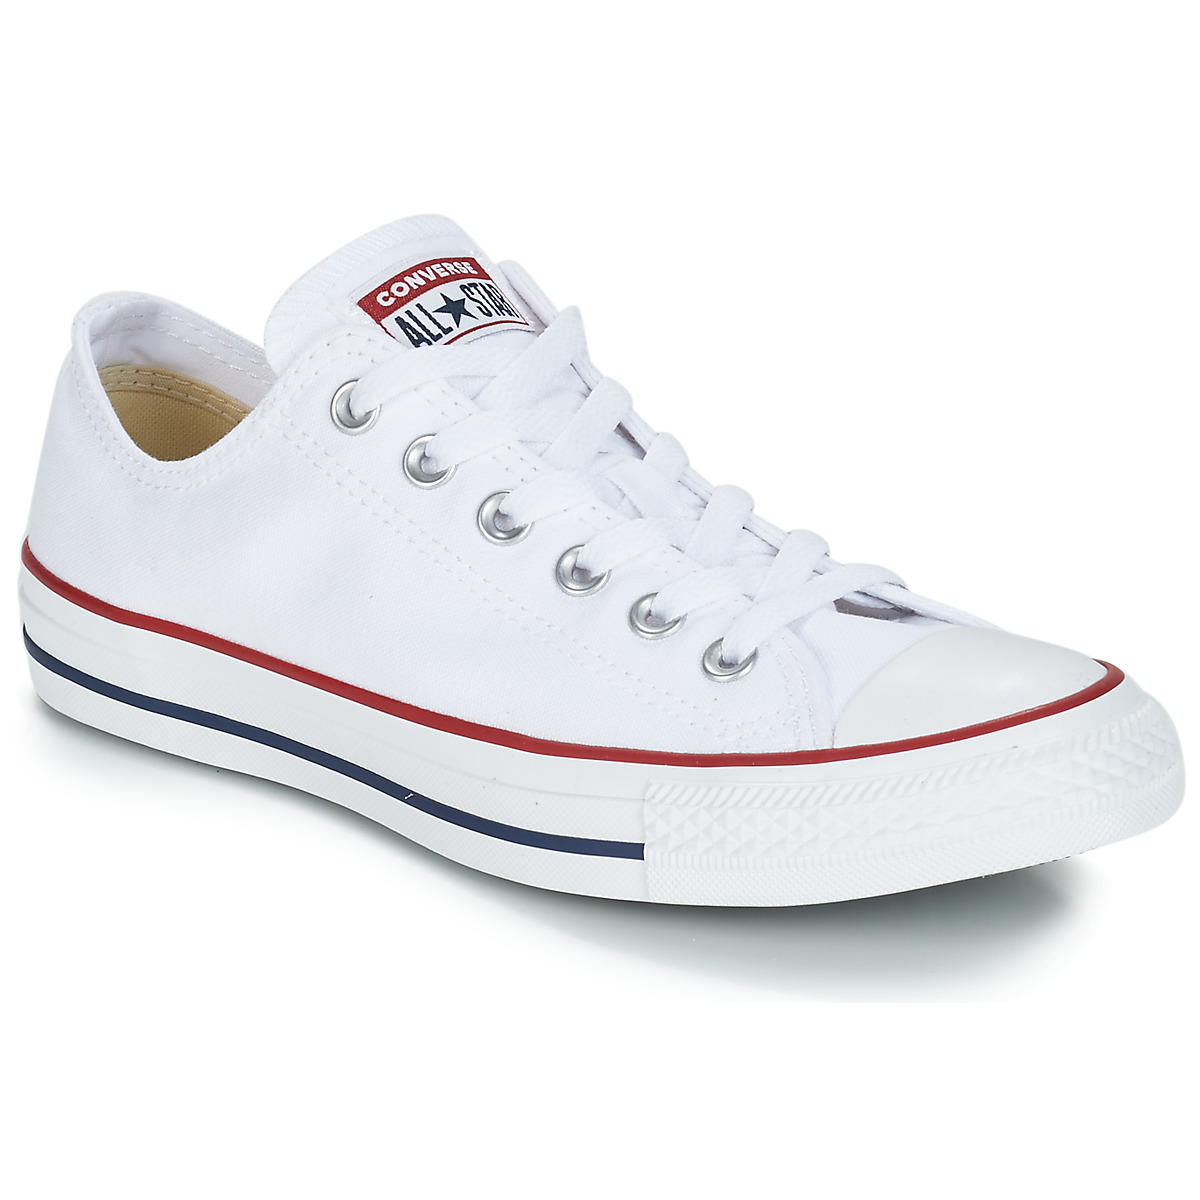 f4bd962fb8b1e Chaussures Baskets basses Converse CHUCK TAYLOR ALL STAR CORE OX Blanc  Optical